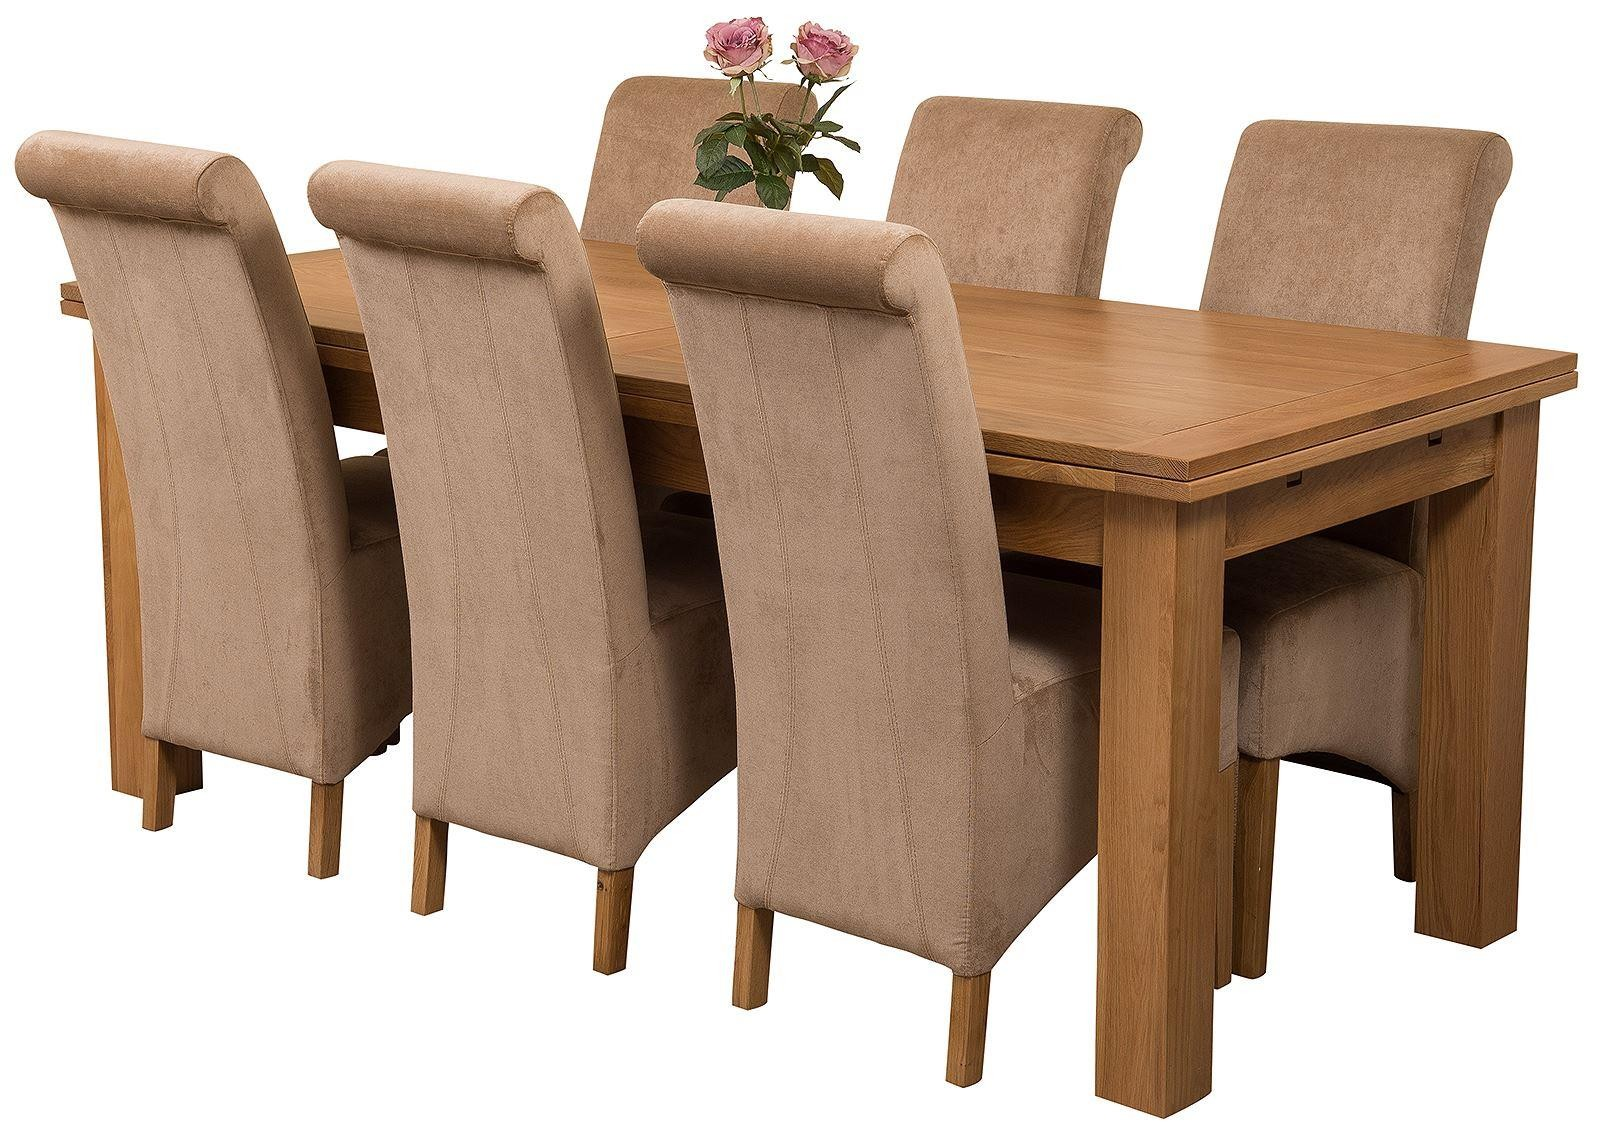 Richmond Solid Oak 200cm-280cm Extending Dining Table with 6 Montana Dining Chairs [Beige Fabric]